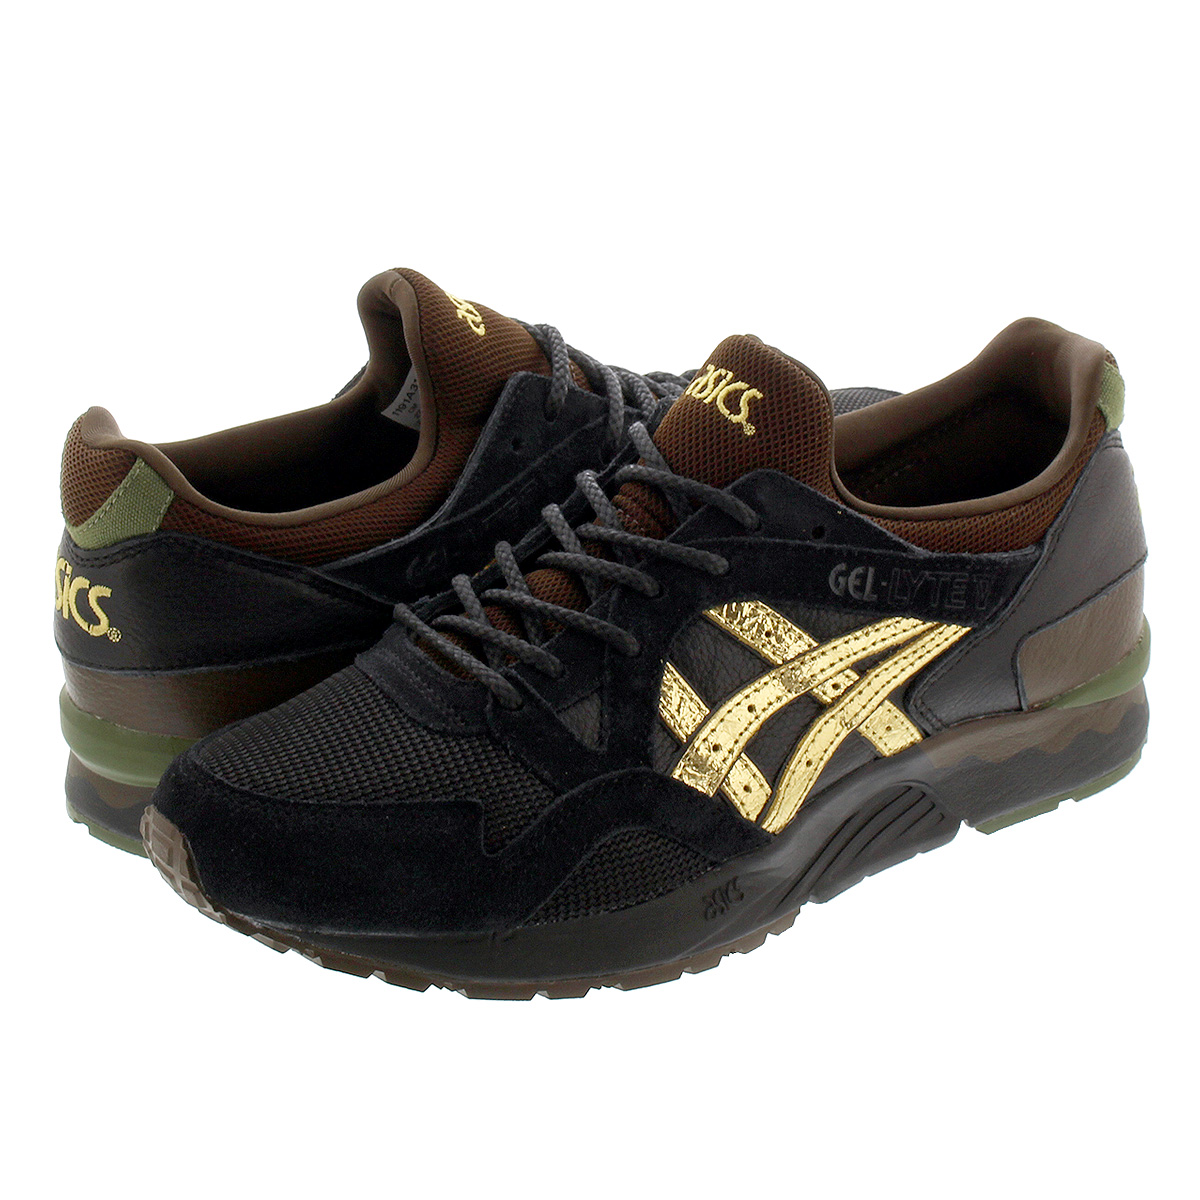 "ASICS GEL-LYTE V ""KLKOGANE"" for KICKS LAB. 【KICKSLAB. x ASICS】 アシックス ゲルライト 5 BLACK/BROWN/GREEN 1191a311-001"